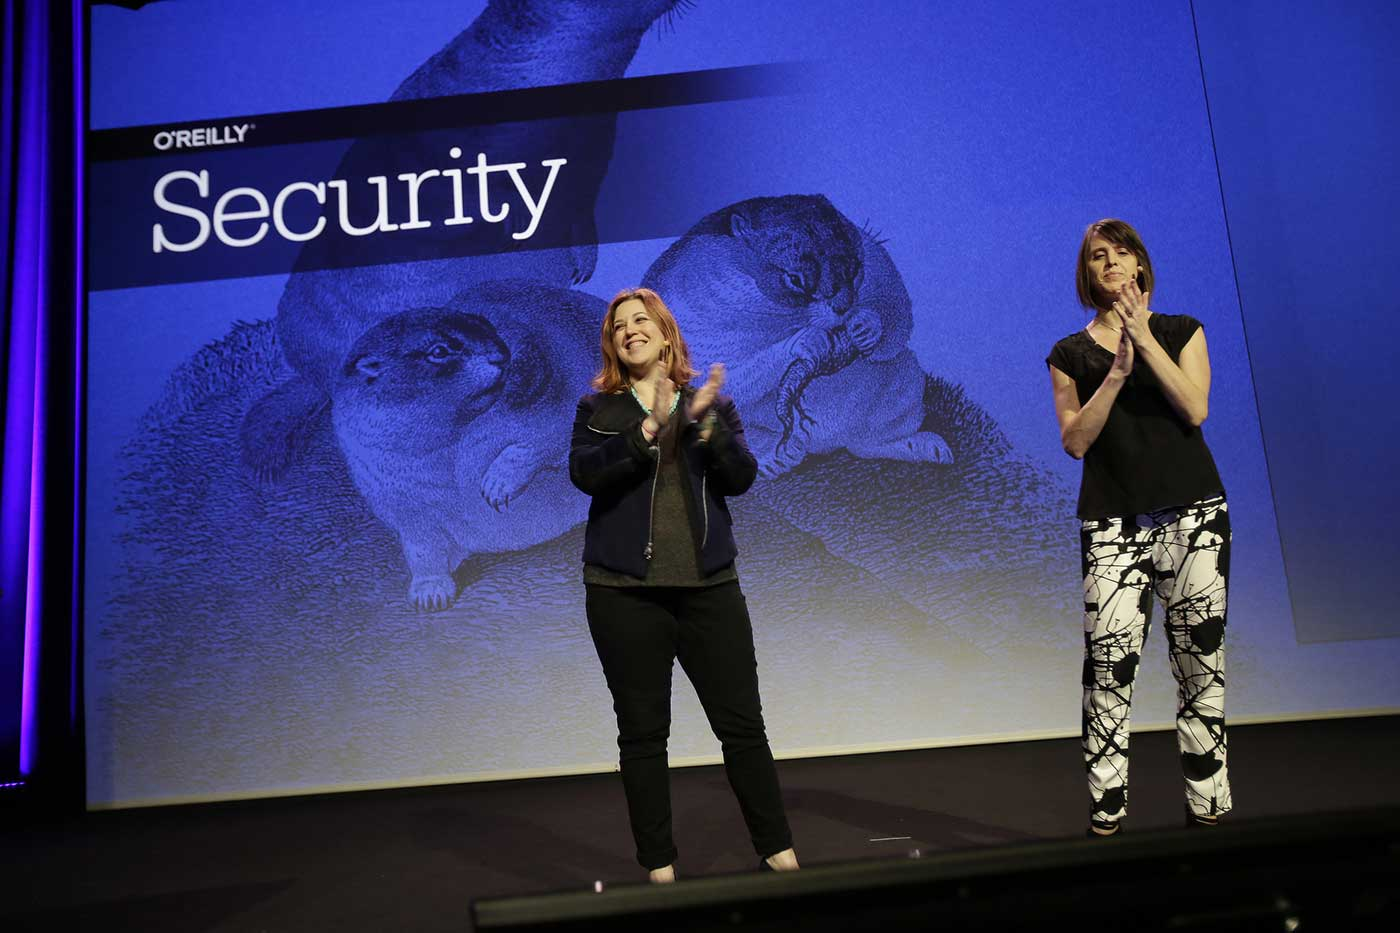 Allison Miller (left) and Courtney Nash (right) at the O'Reilly Security Conference in Amsterdam 2016.